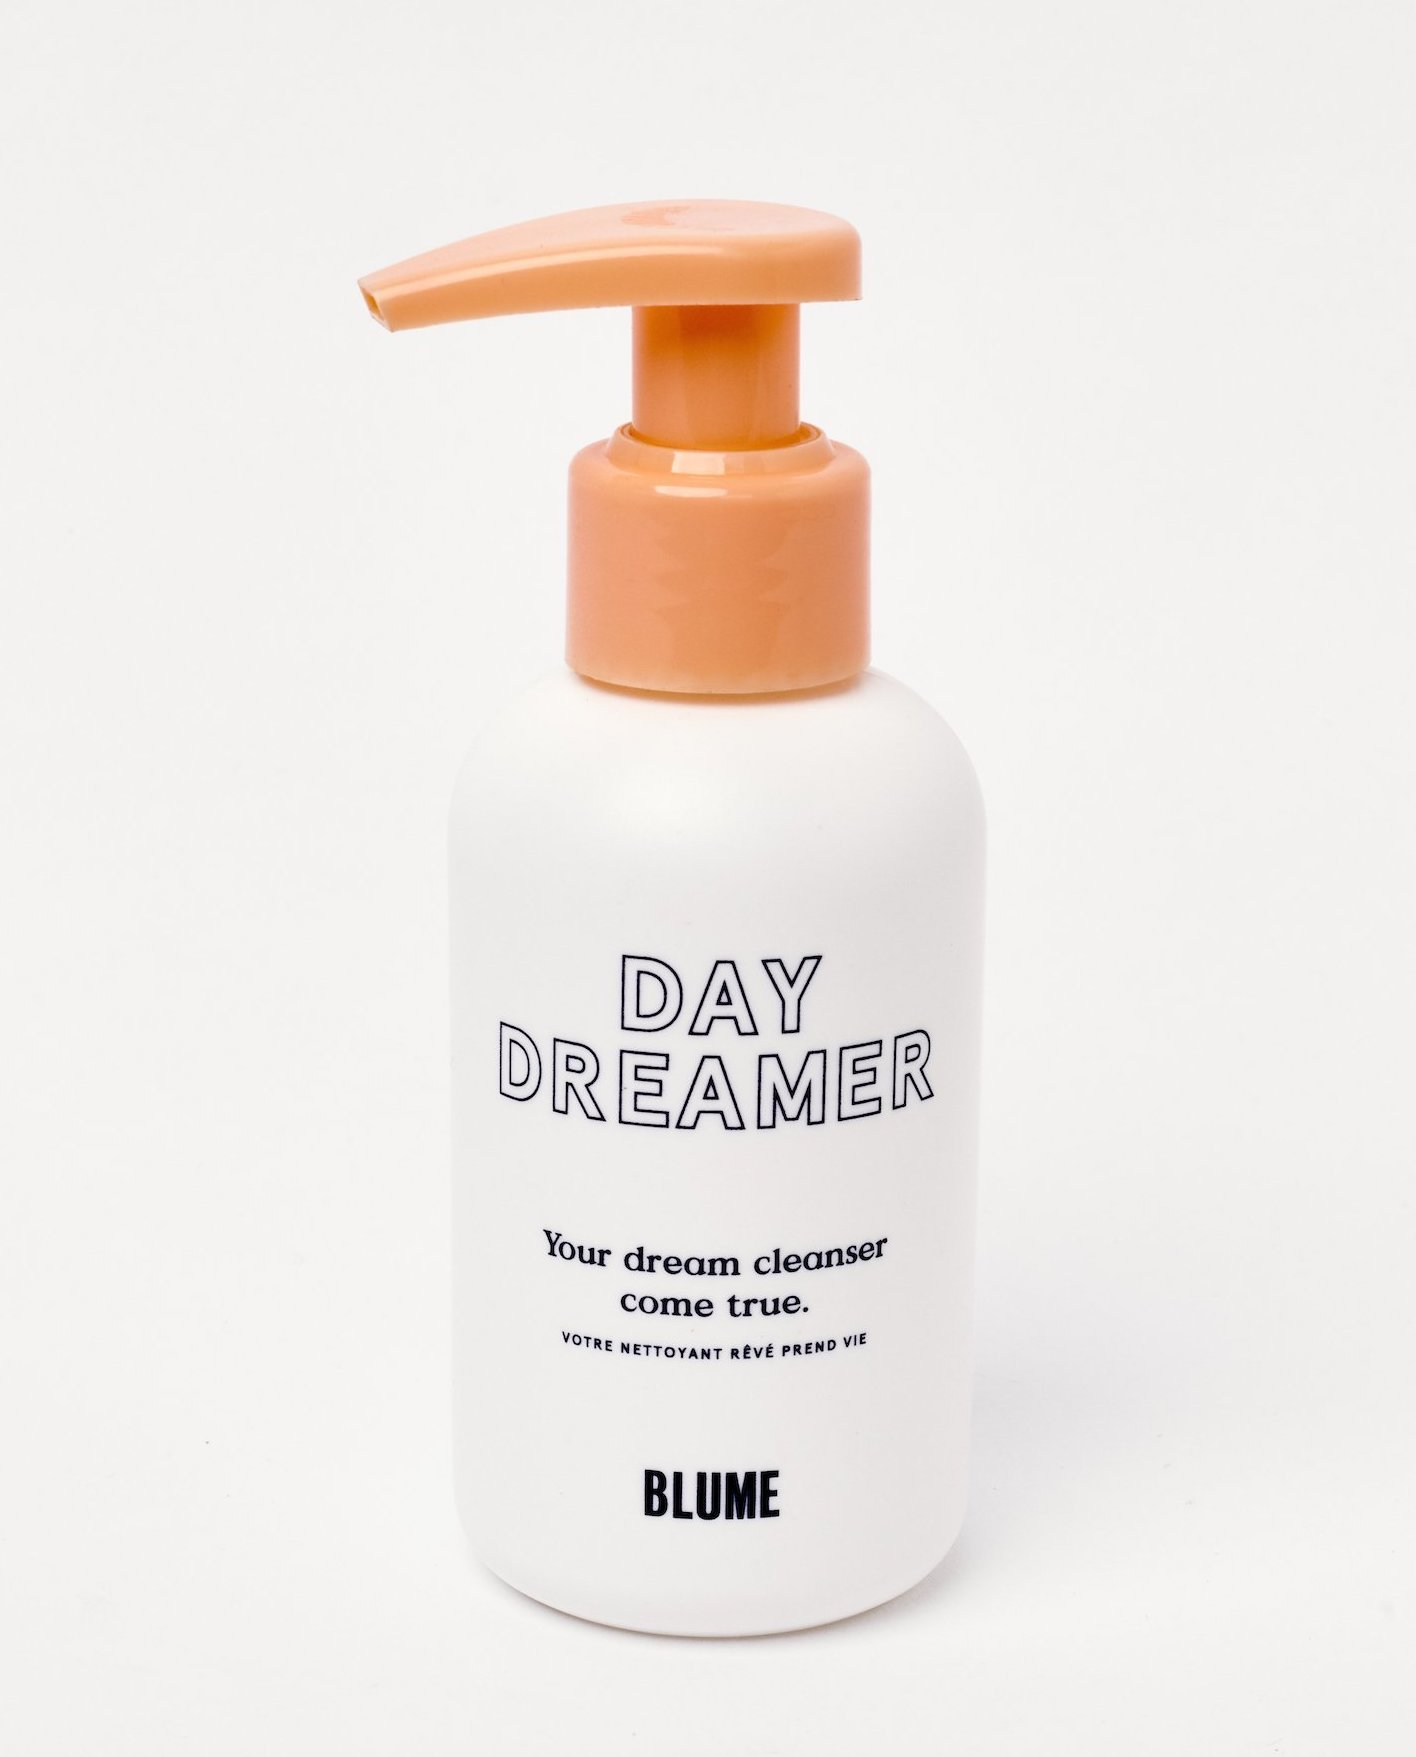 Blume face cleanser